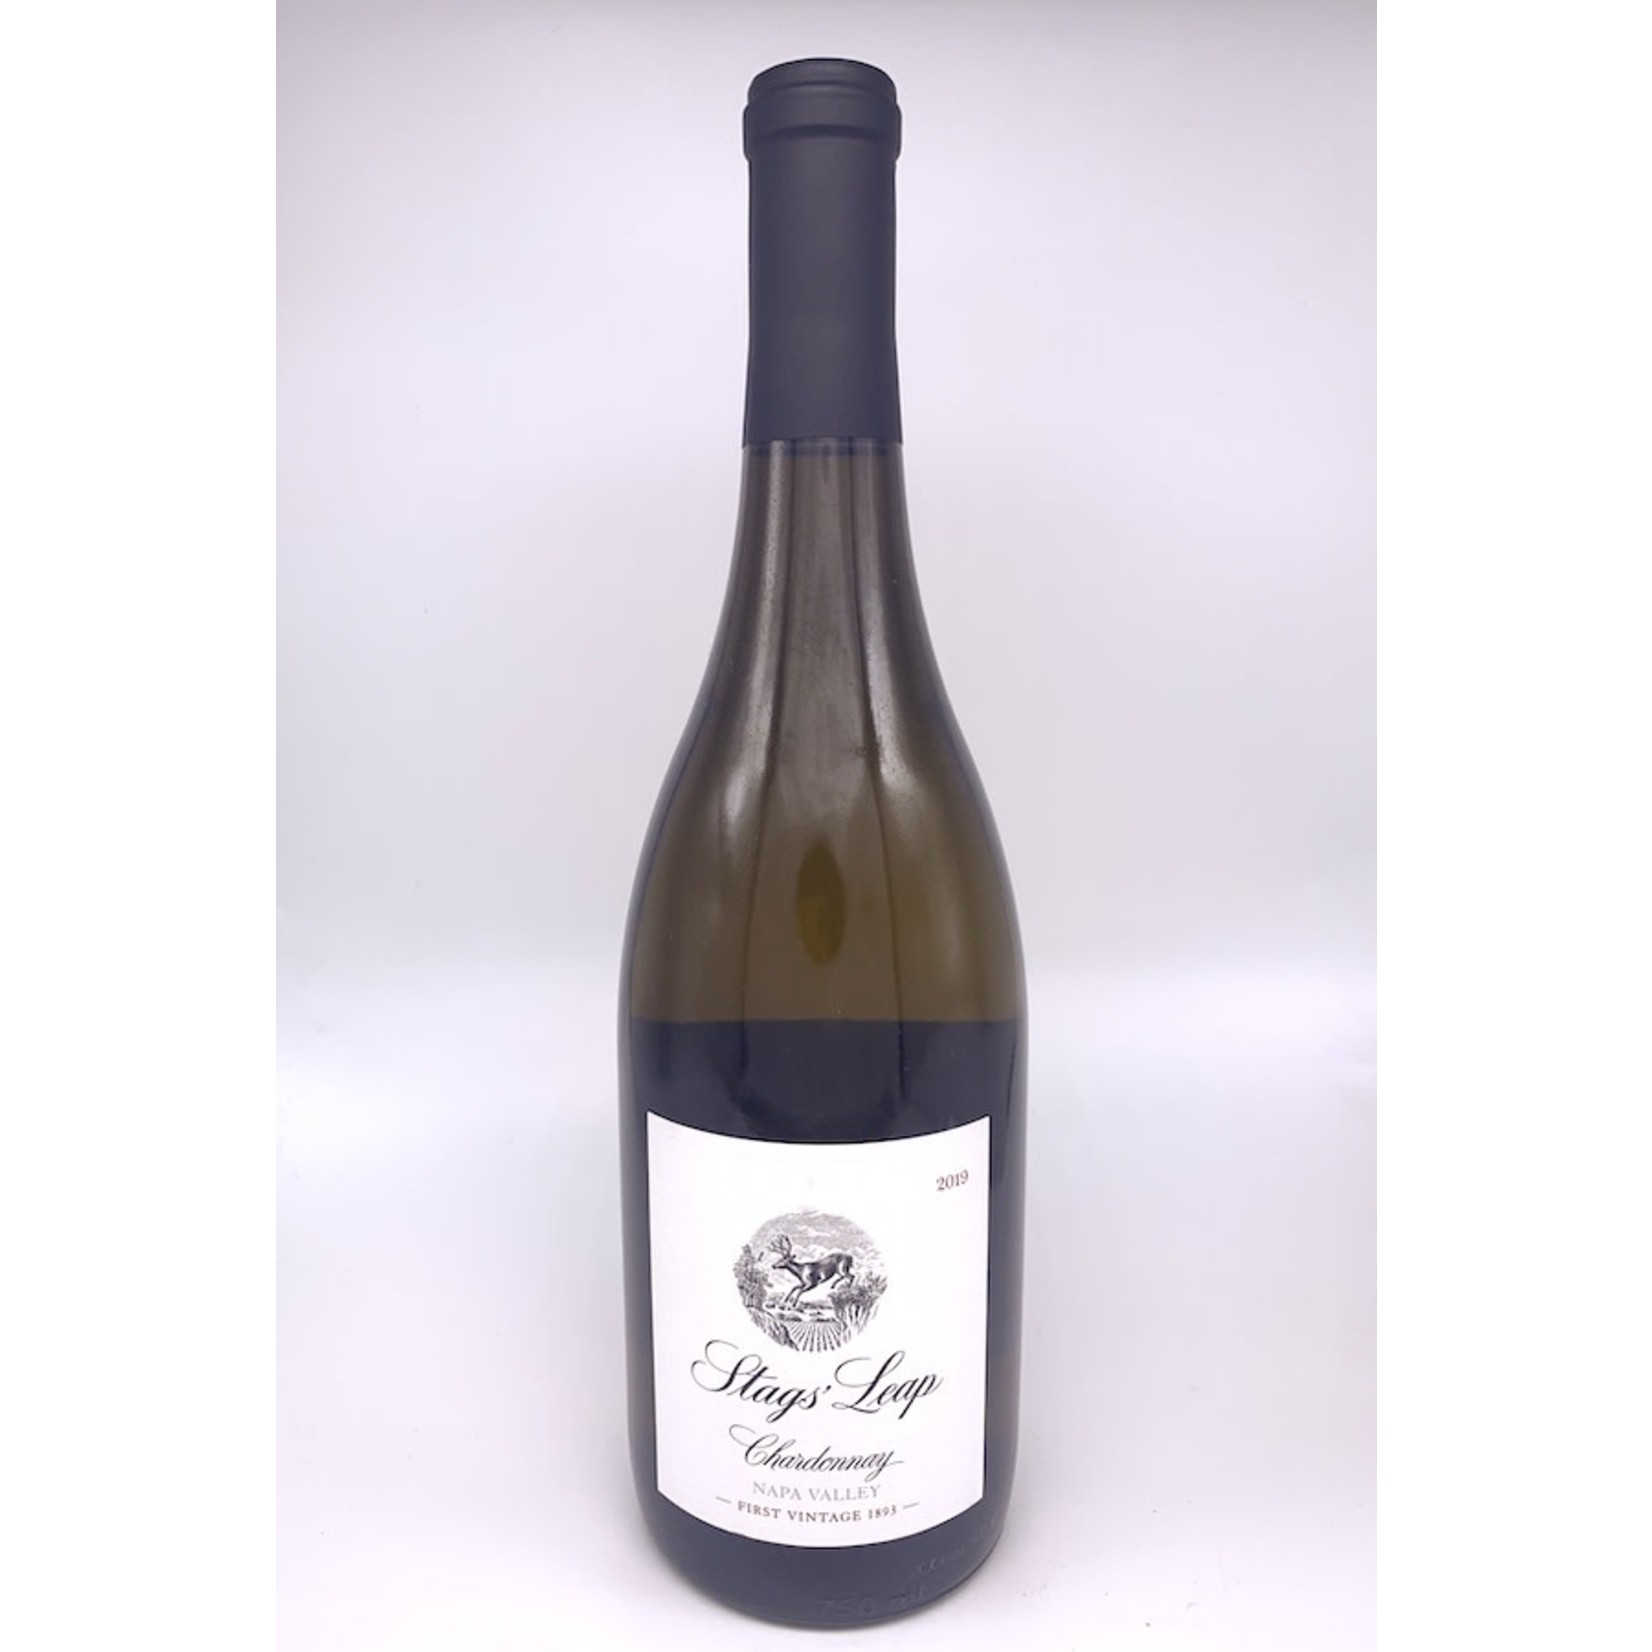 2019 Stags' Leap Chardonnay